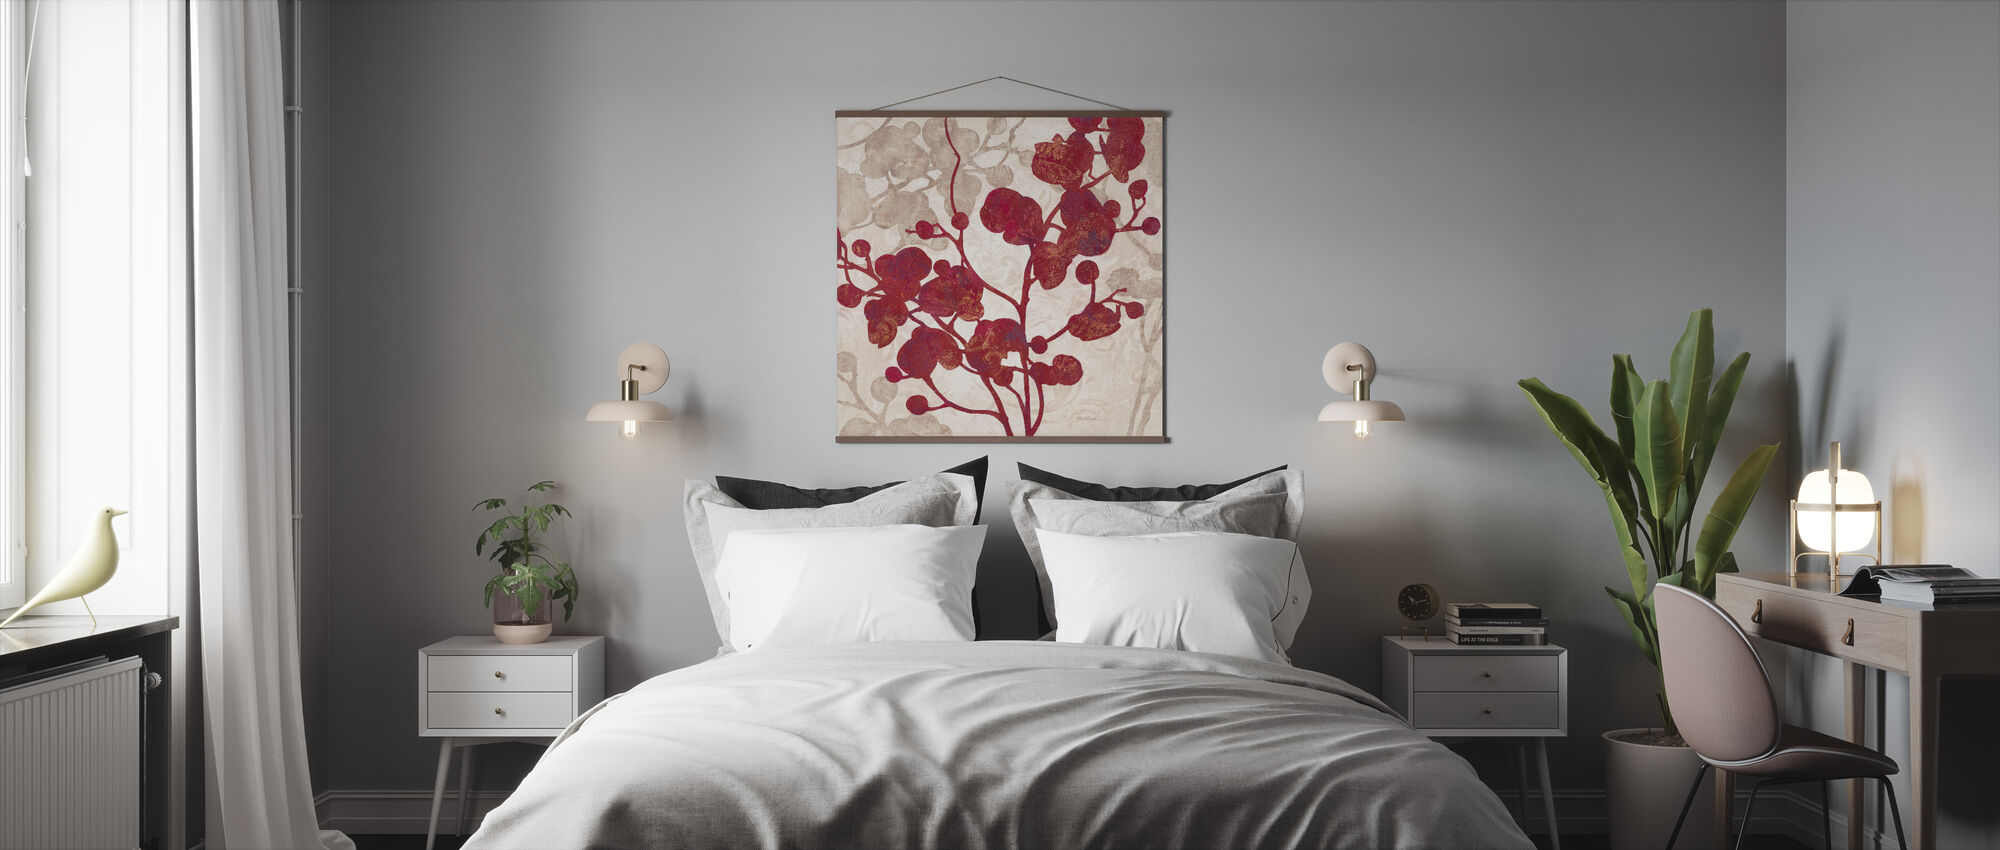 Luscious Orchid 2 - Poster - Bedroom